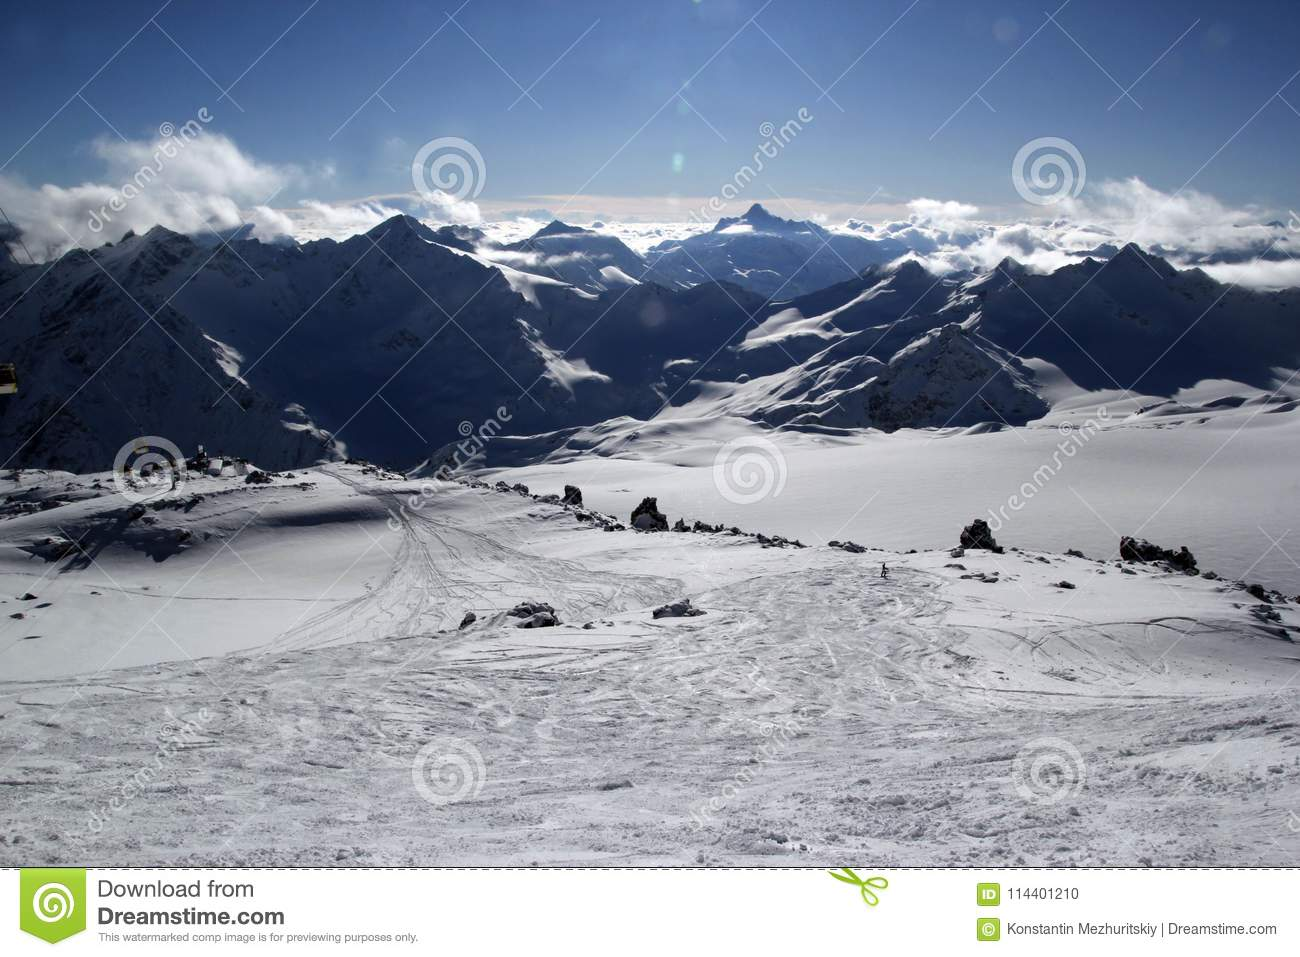 High mountains off-piste slopes for freeride with traces of skis and snowboards, sunny winter day, Caucasus Mountains, Elbrus